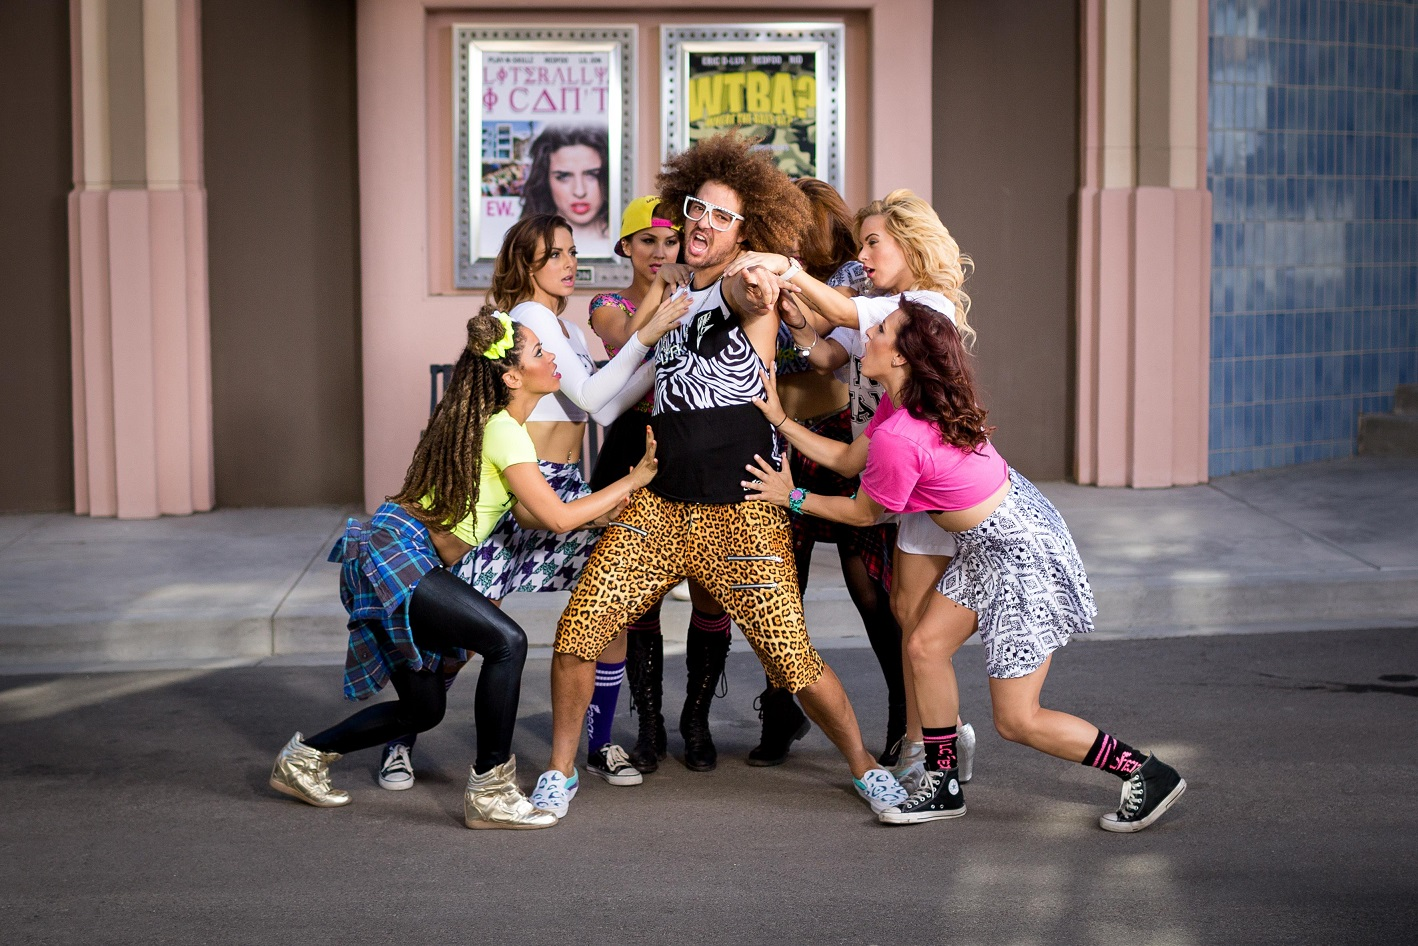 Redfoo to perform at iHeartRadio Australia Music Festival